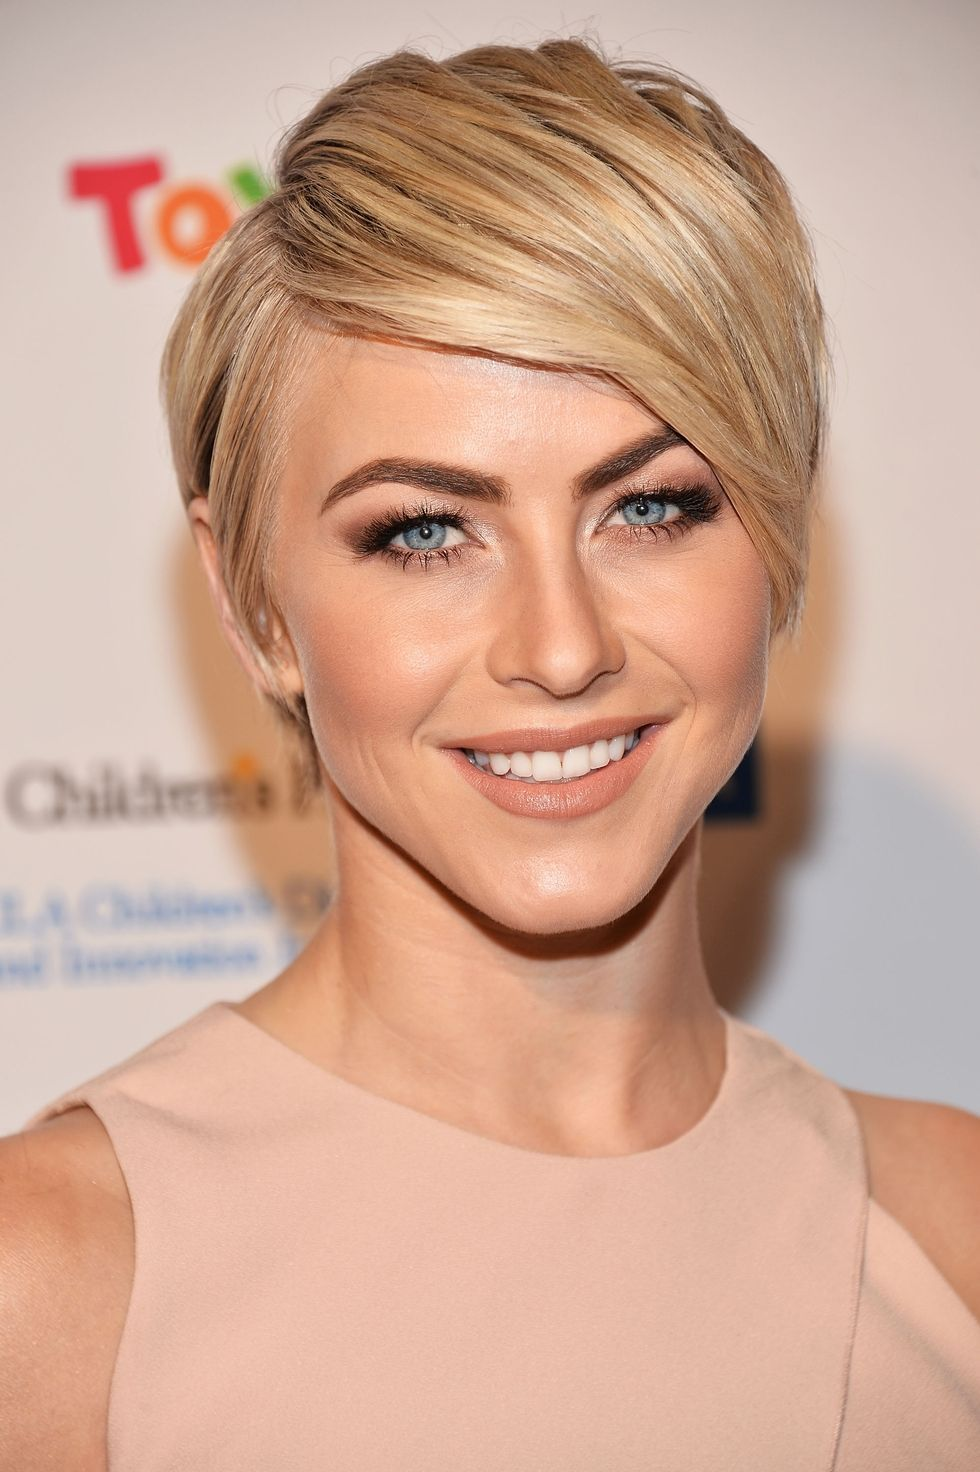 best pixie cut hairstyle ideas for chic celebrity pixie